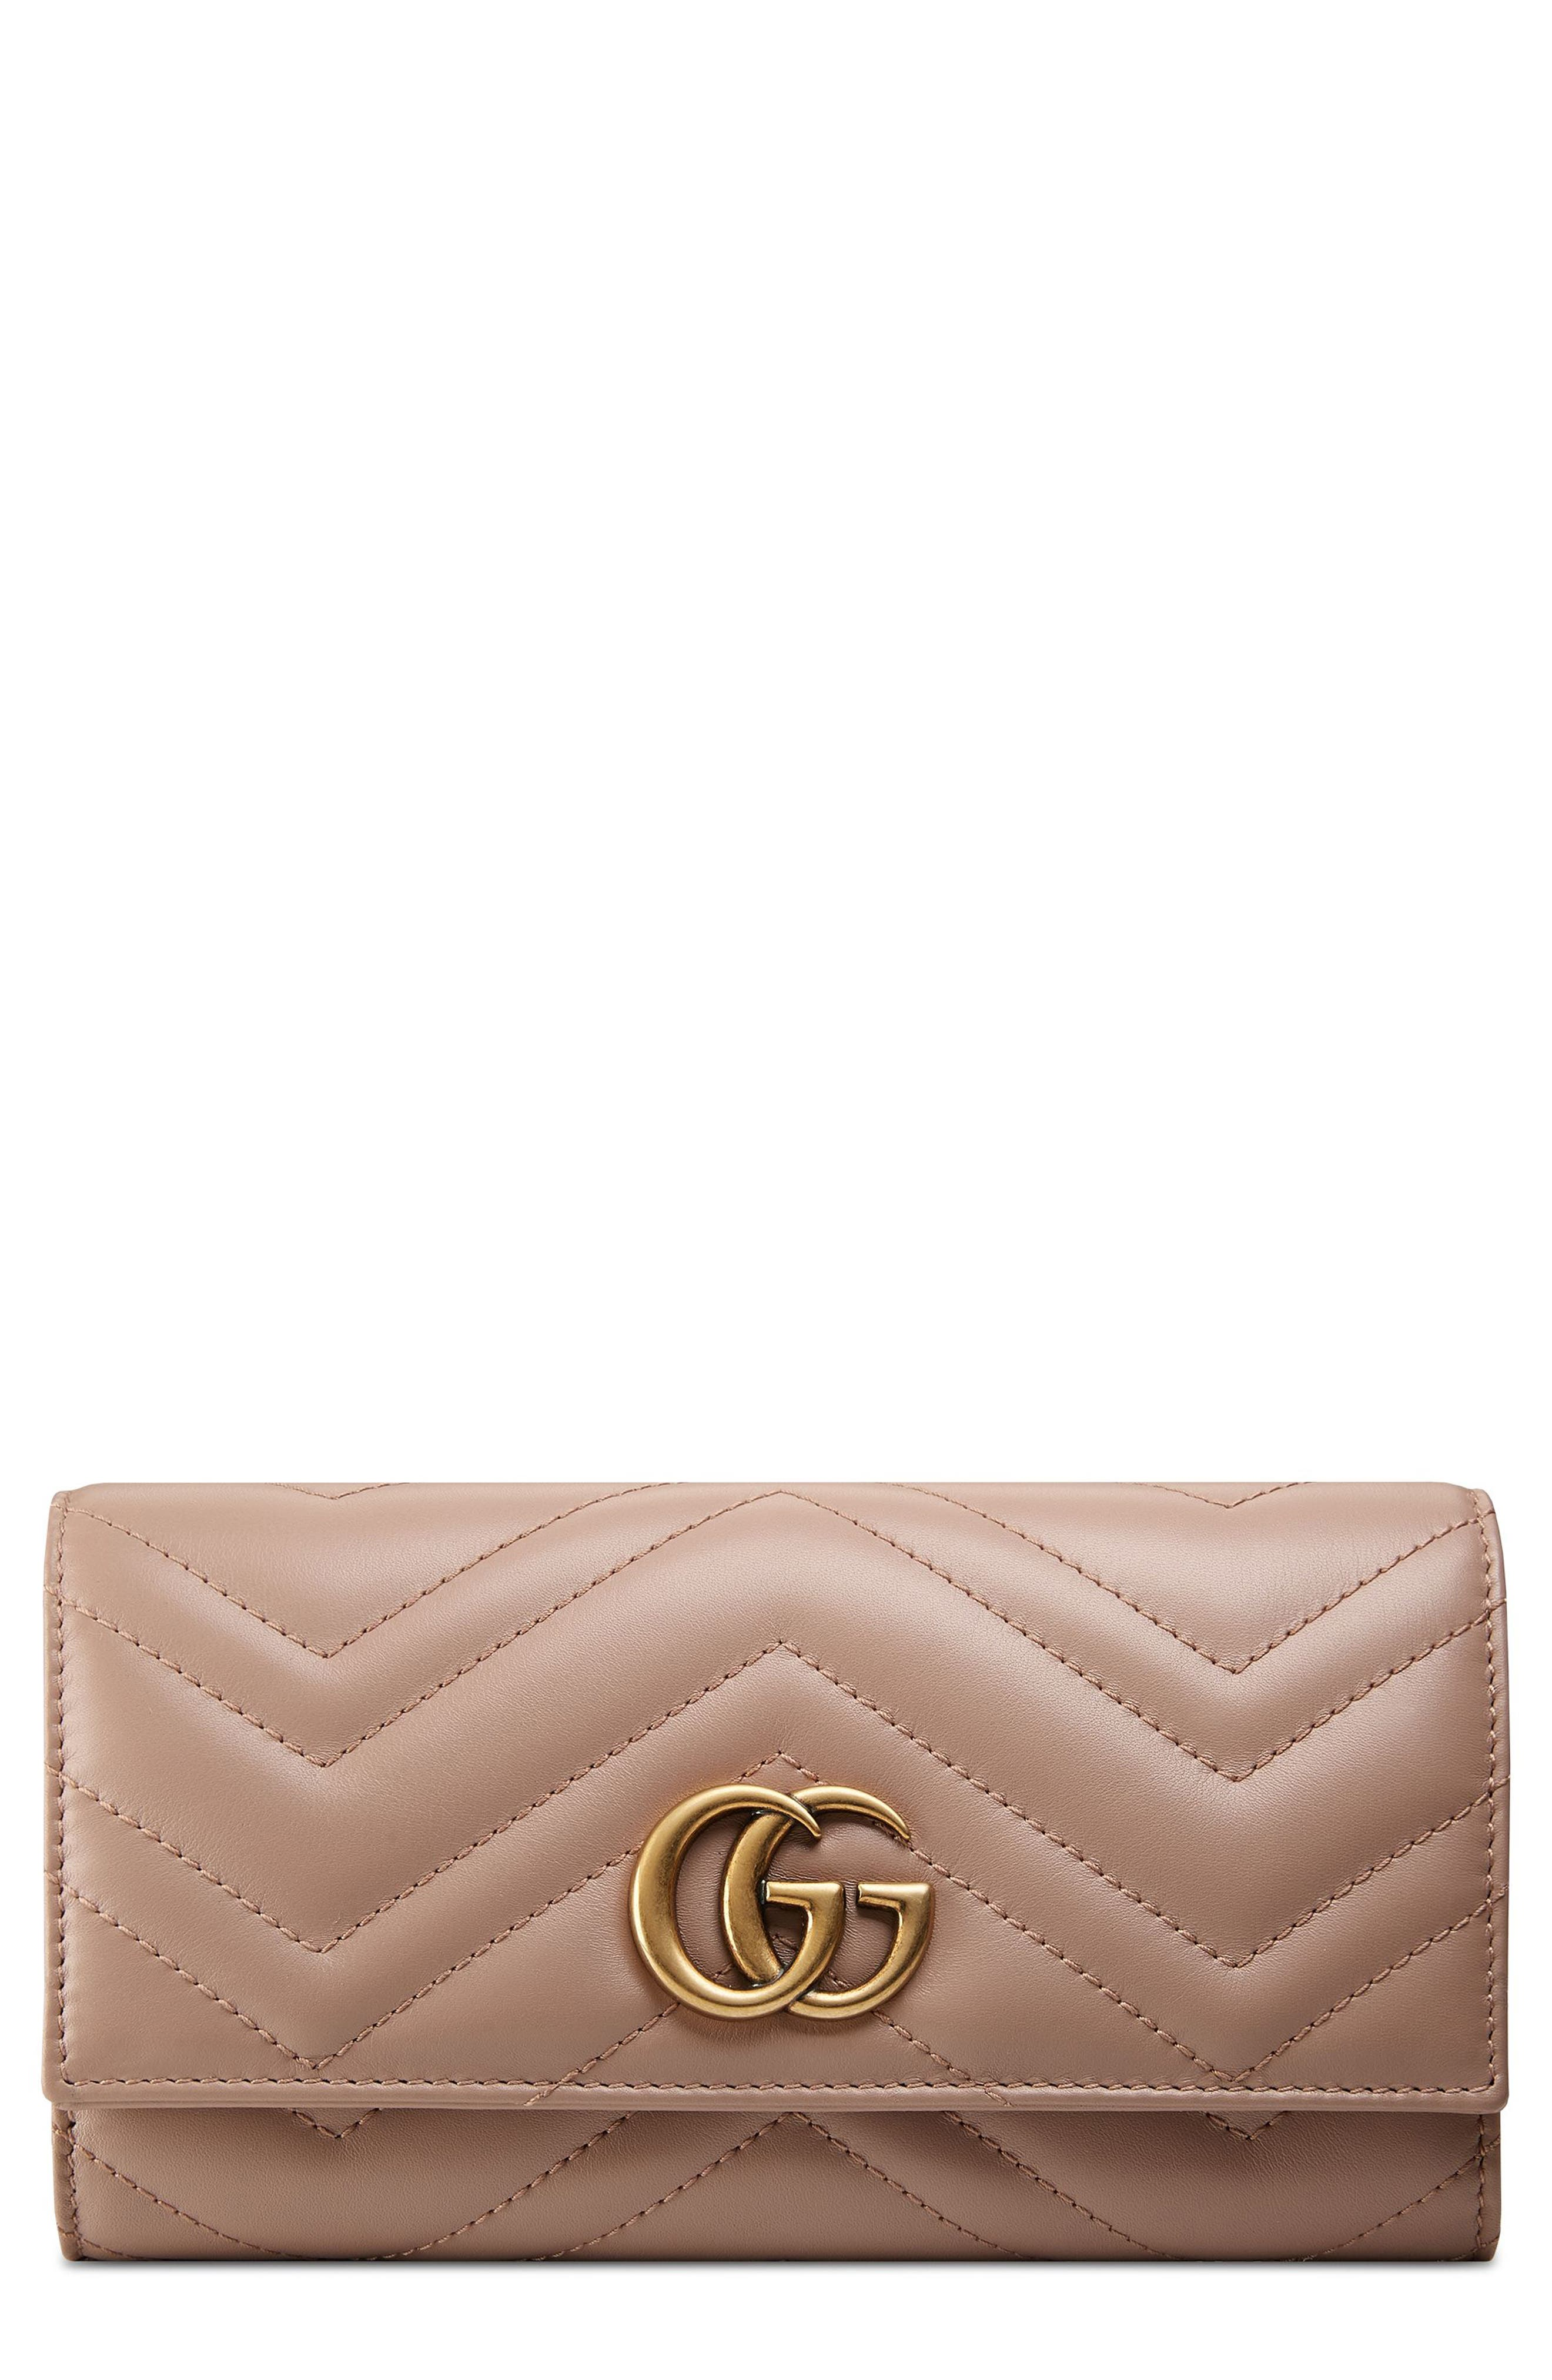 Gucci GG Marmont Matelassé Leather Continental Wallet